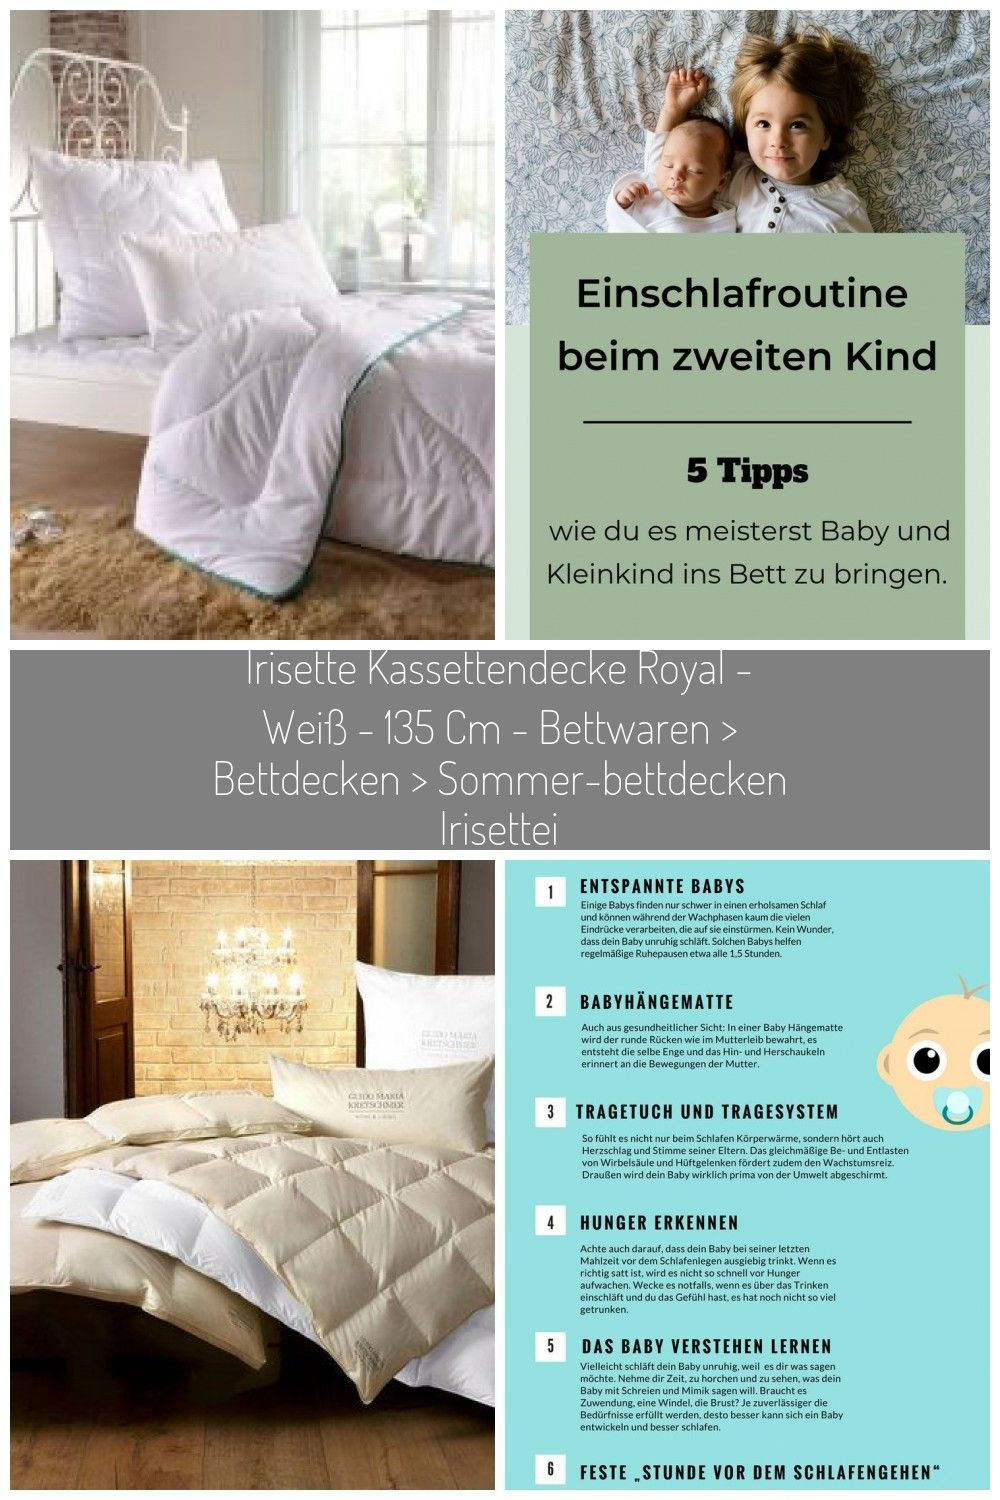 Bettwarenshop Sommerdecke Cool Touchbettwaren Shop Schlaf Kinder Irisette Kassettendecke Royal Weiß 135 Cm Bettwaren Be Kassettendecke Bettdecken Bett